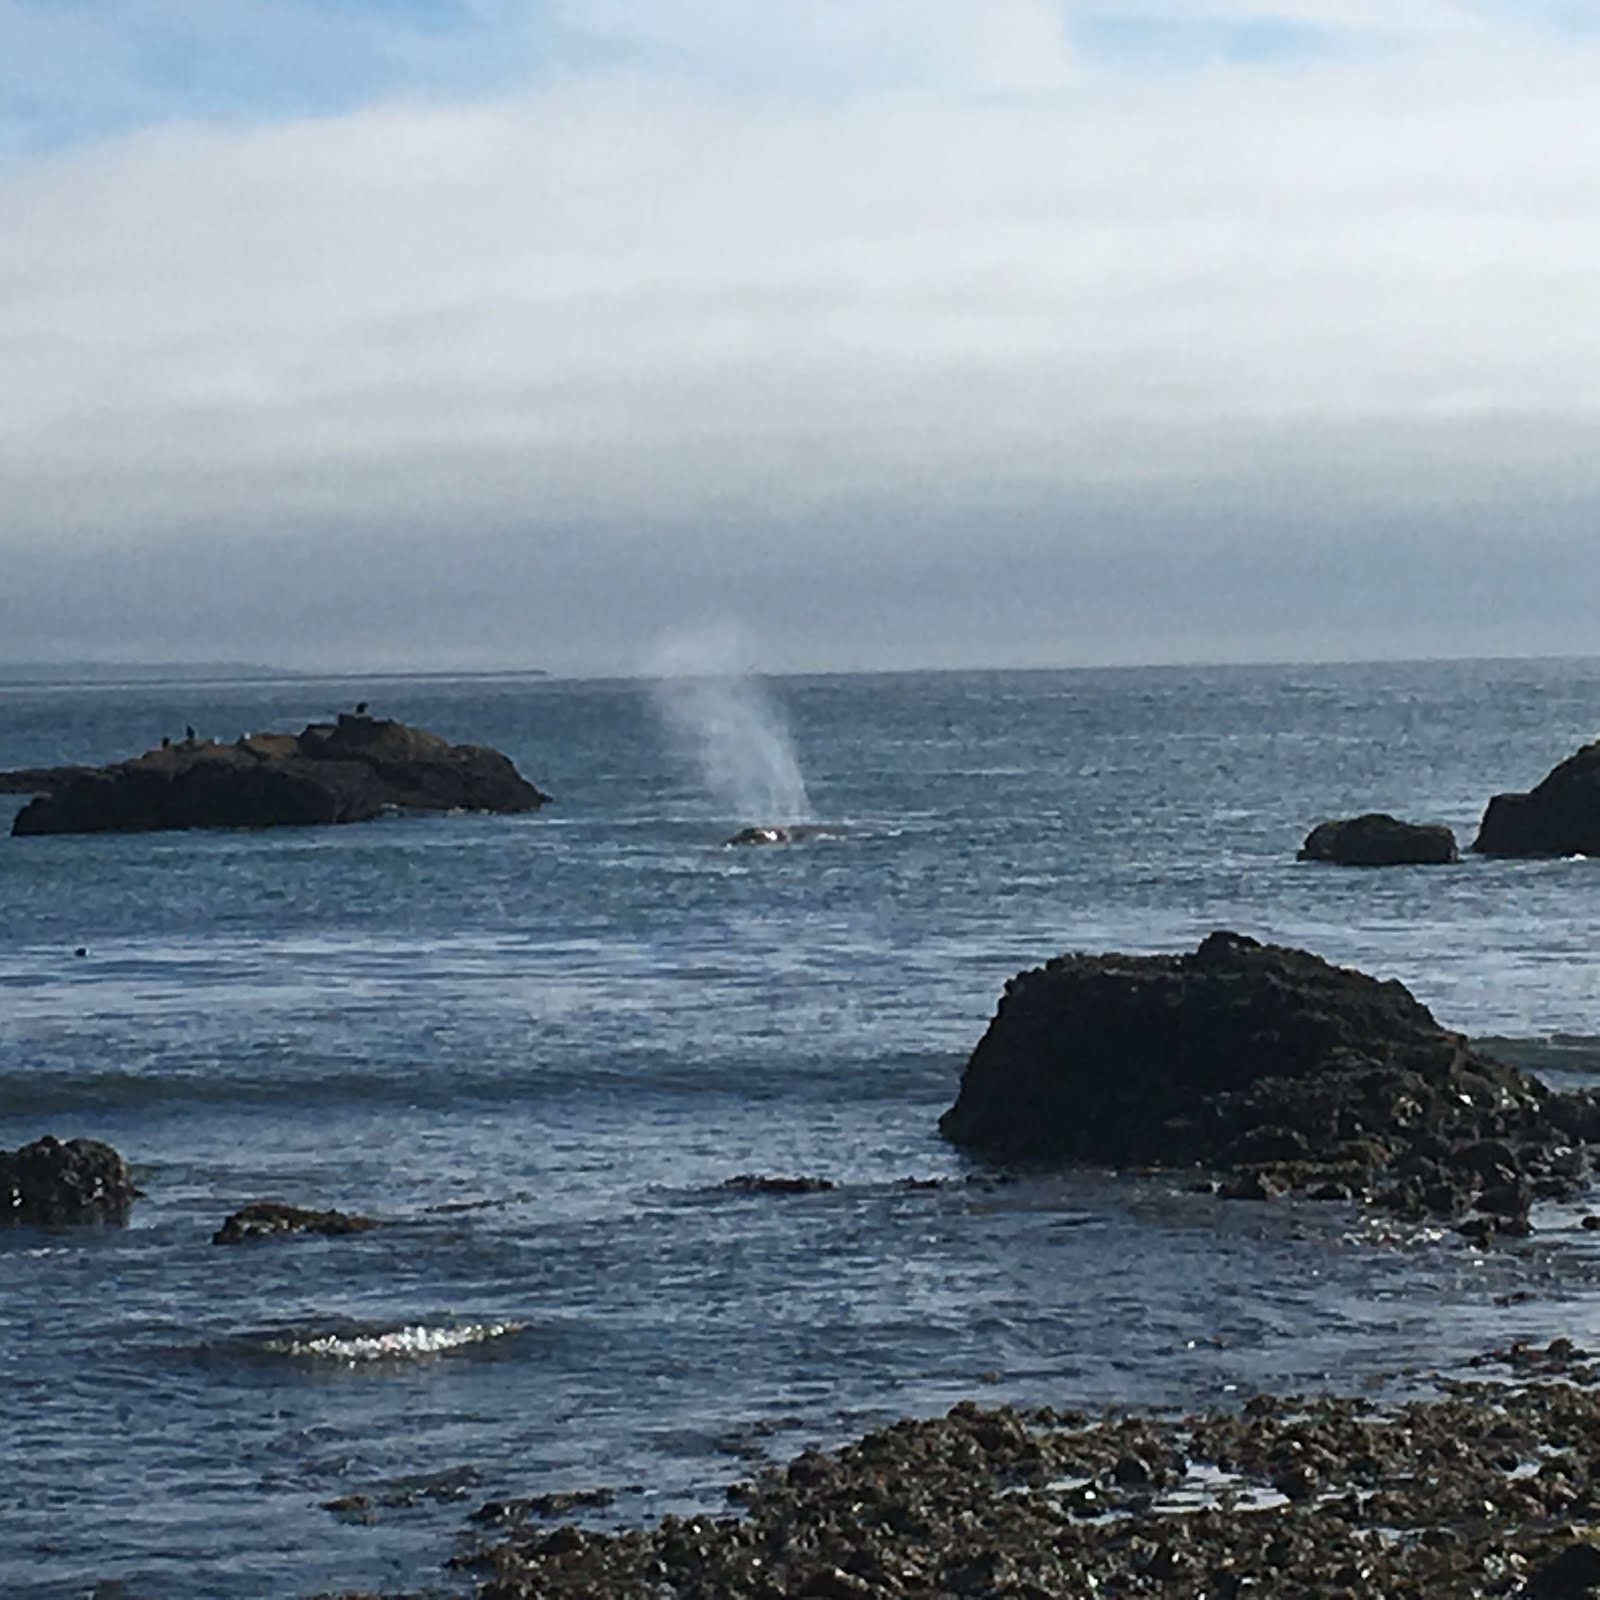 We saw spouting whales galore, this one close to shore.